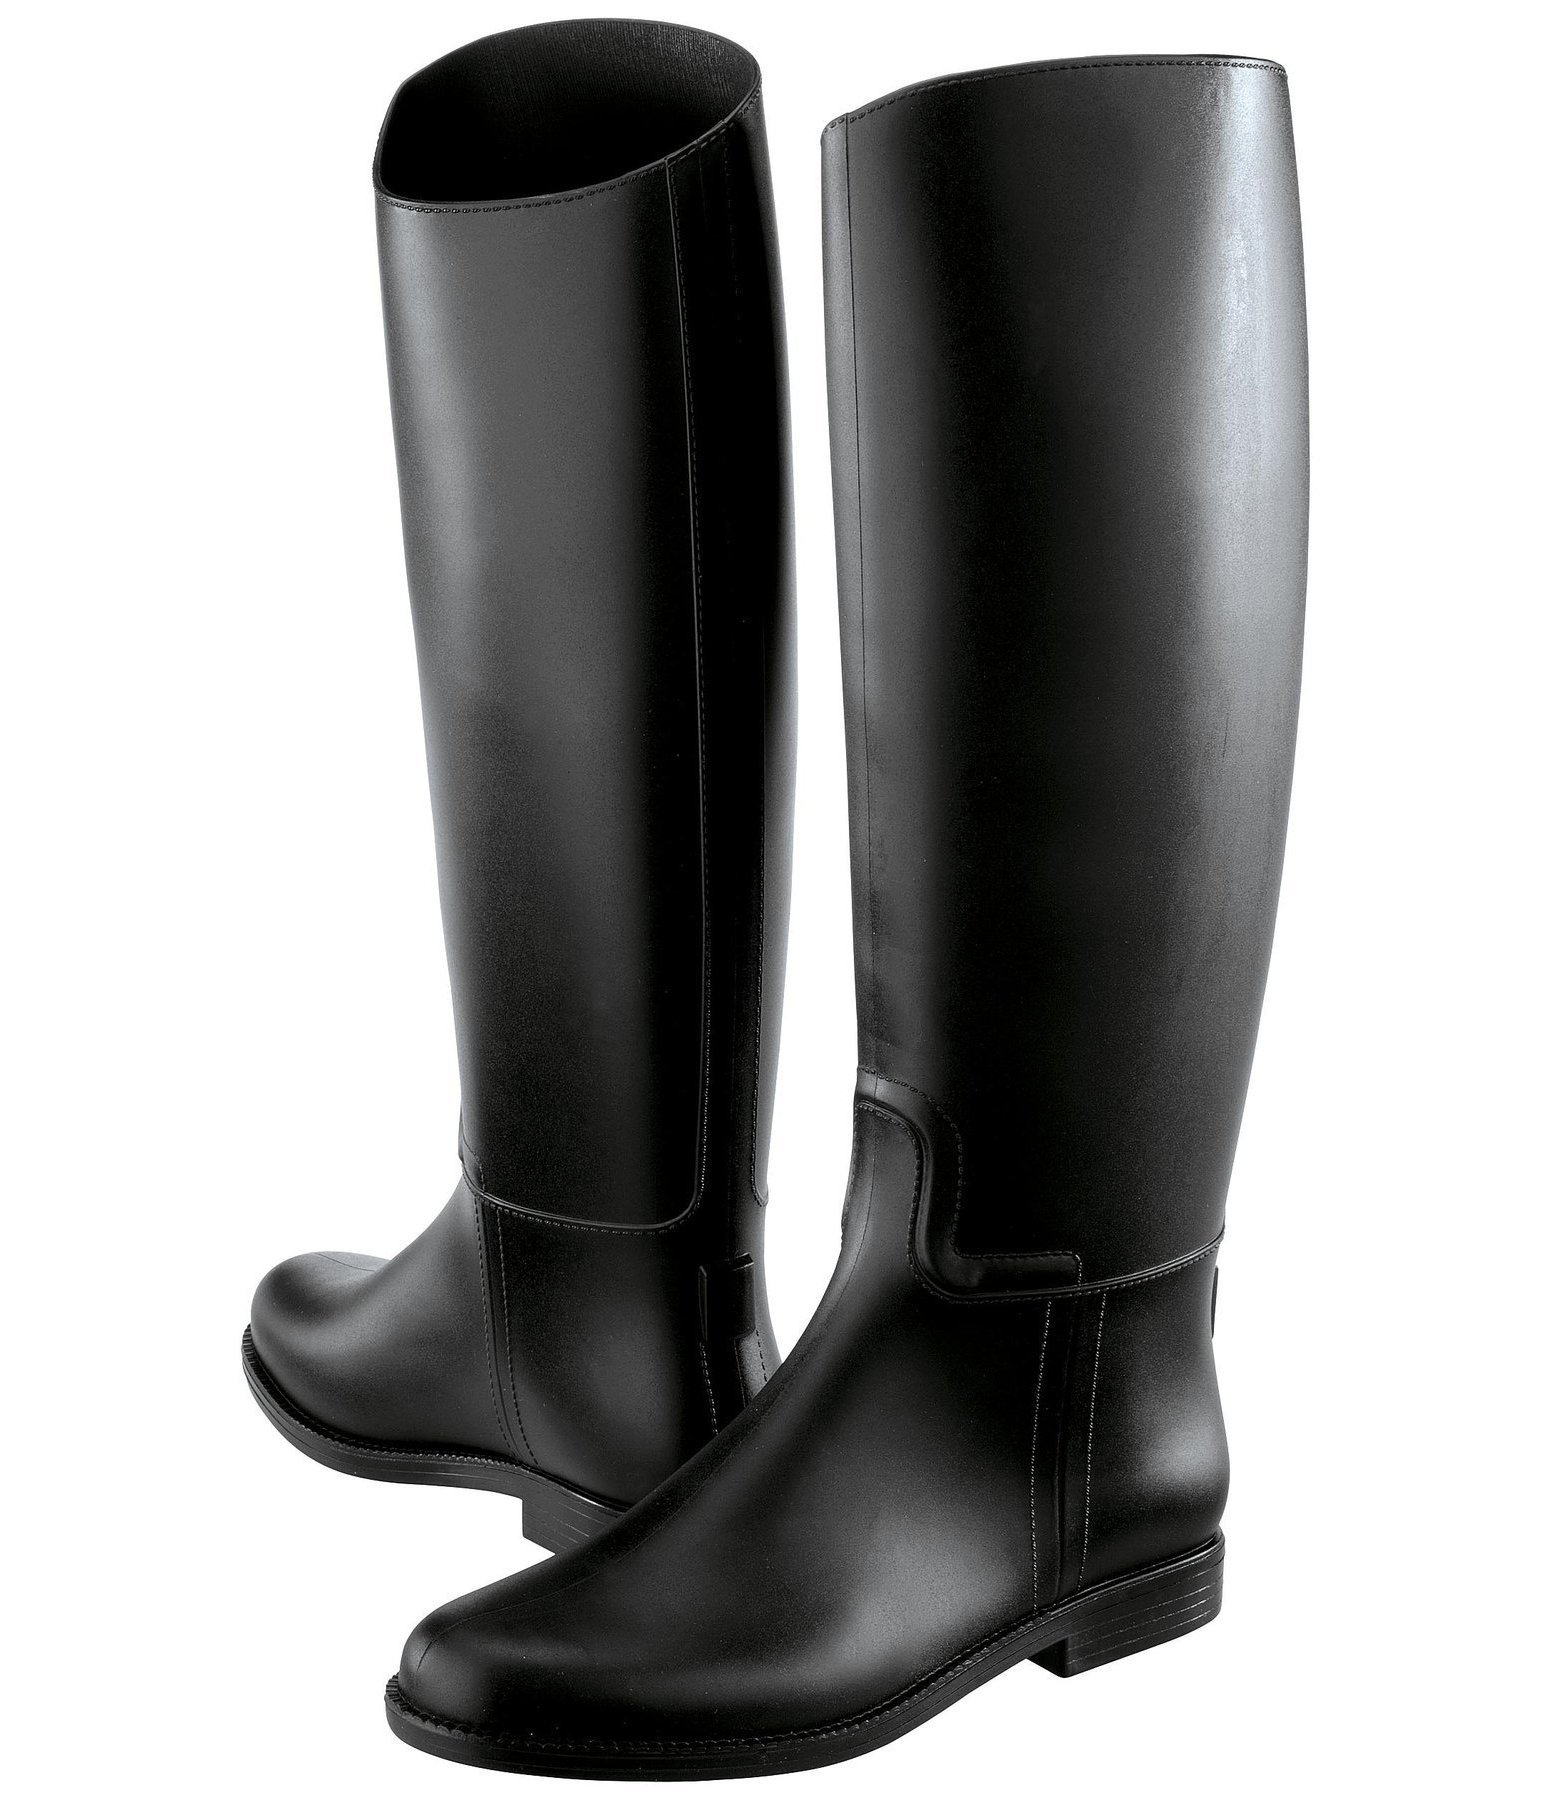 Long Rubber Riding Boots Start